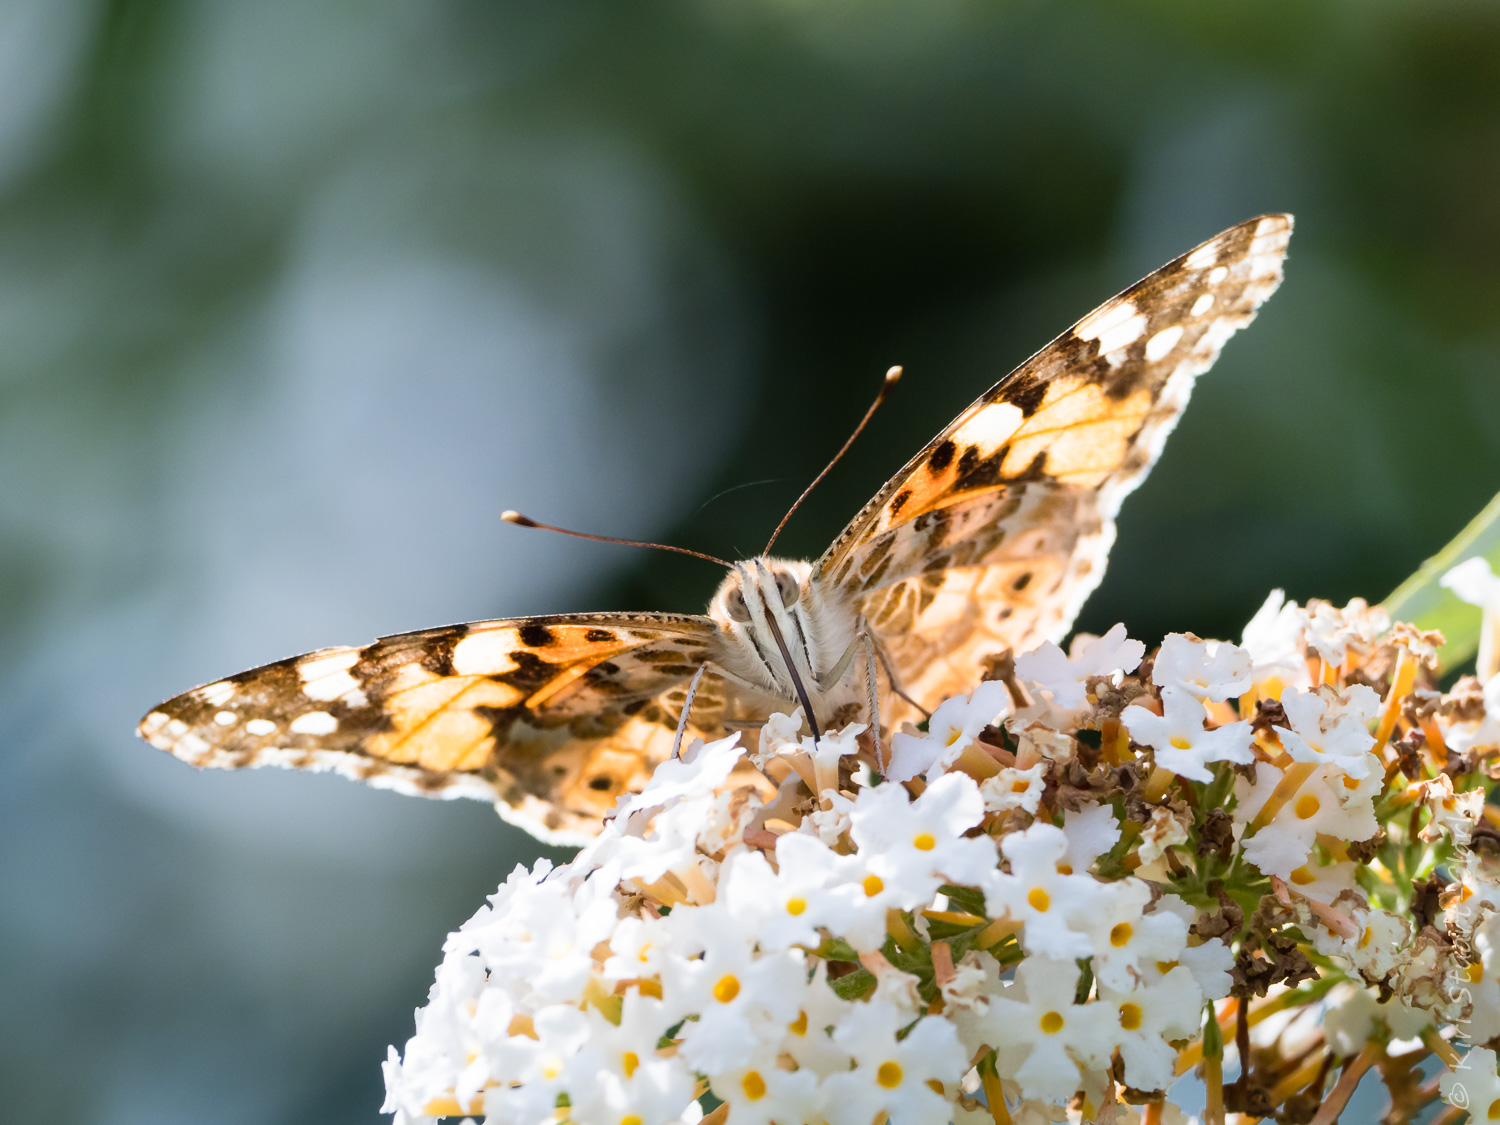 Painted Lady nectaring on White Buddliea head on